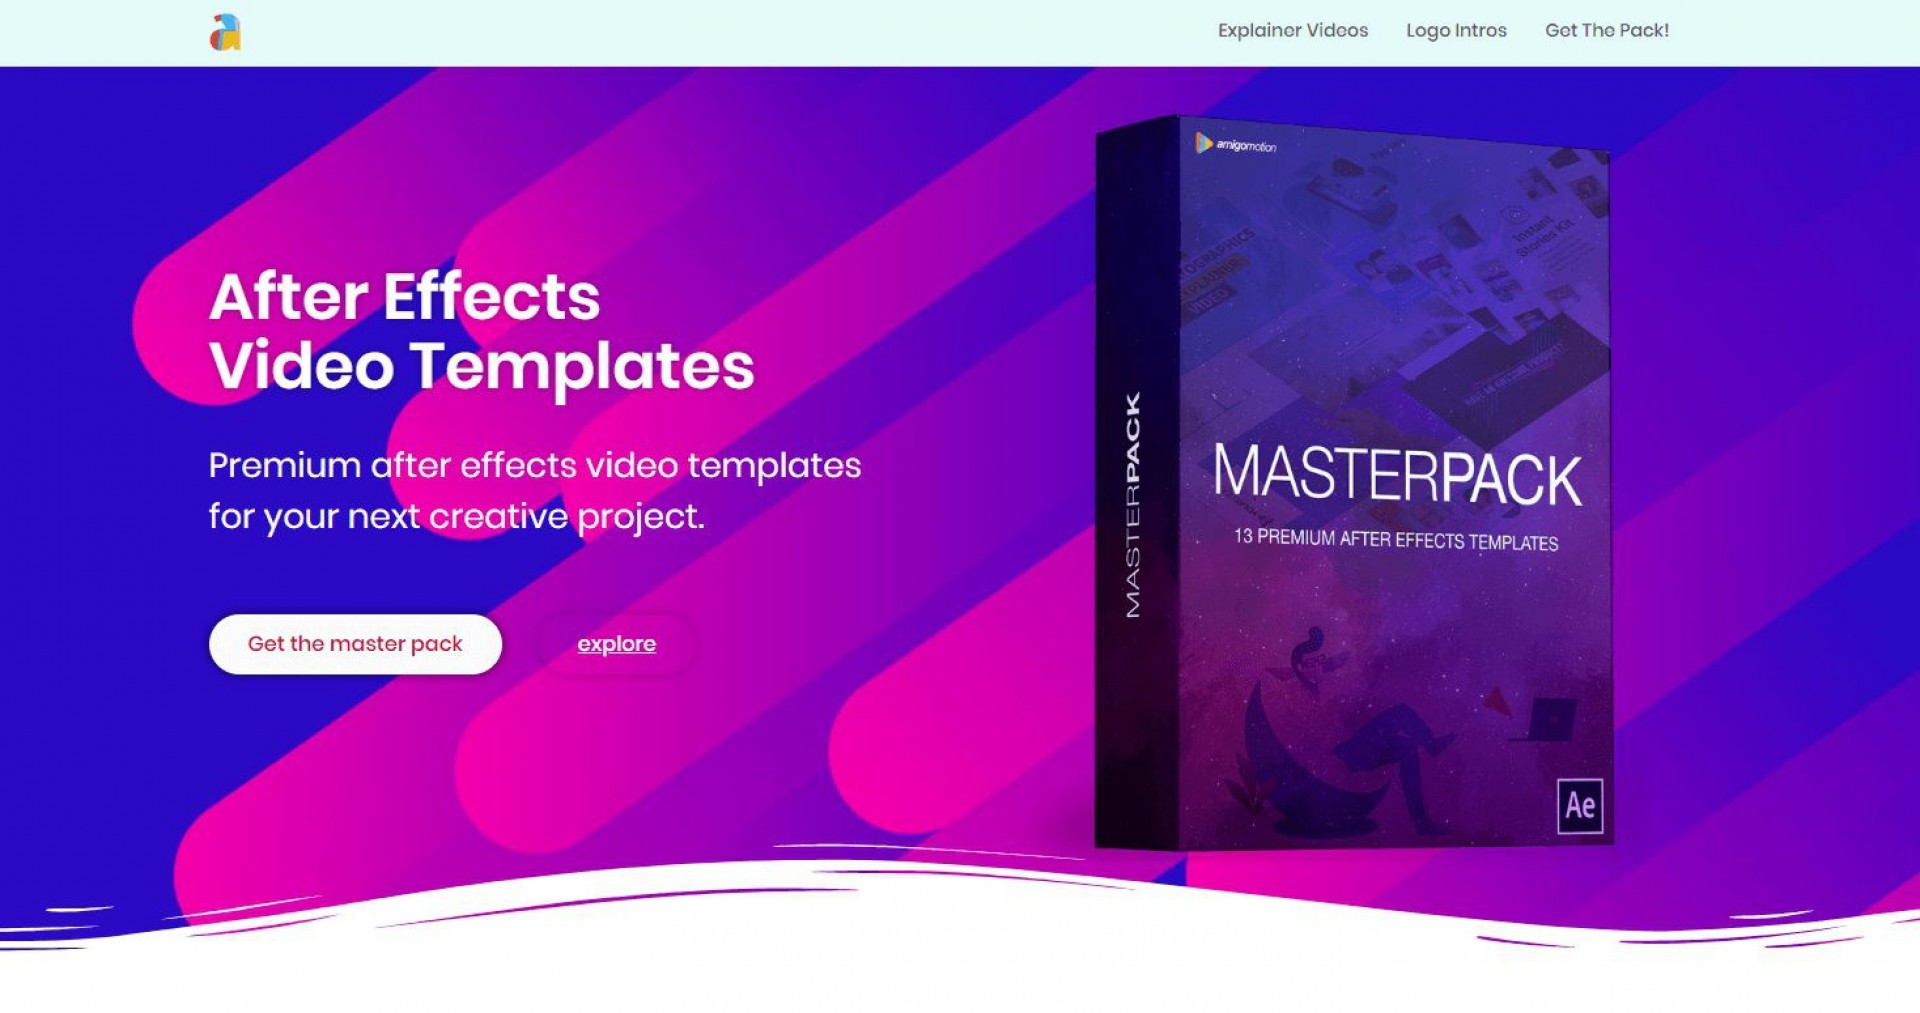 003 Striking After Effect Video Template Inspiration  Templates Intro Free Download Cs5 Clip1920